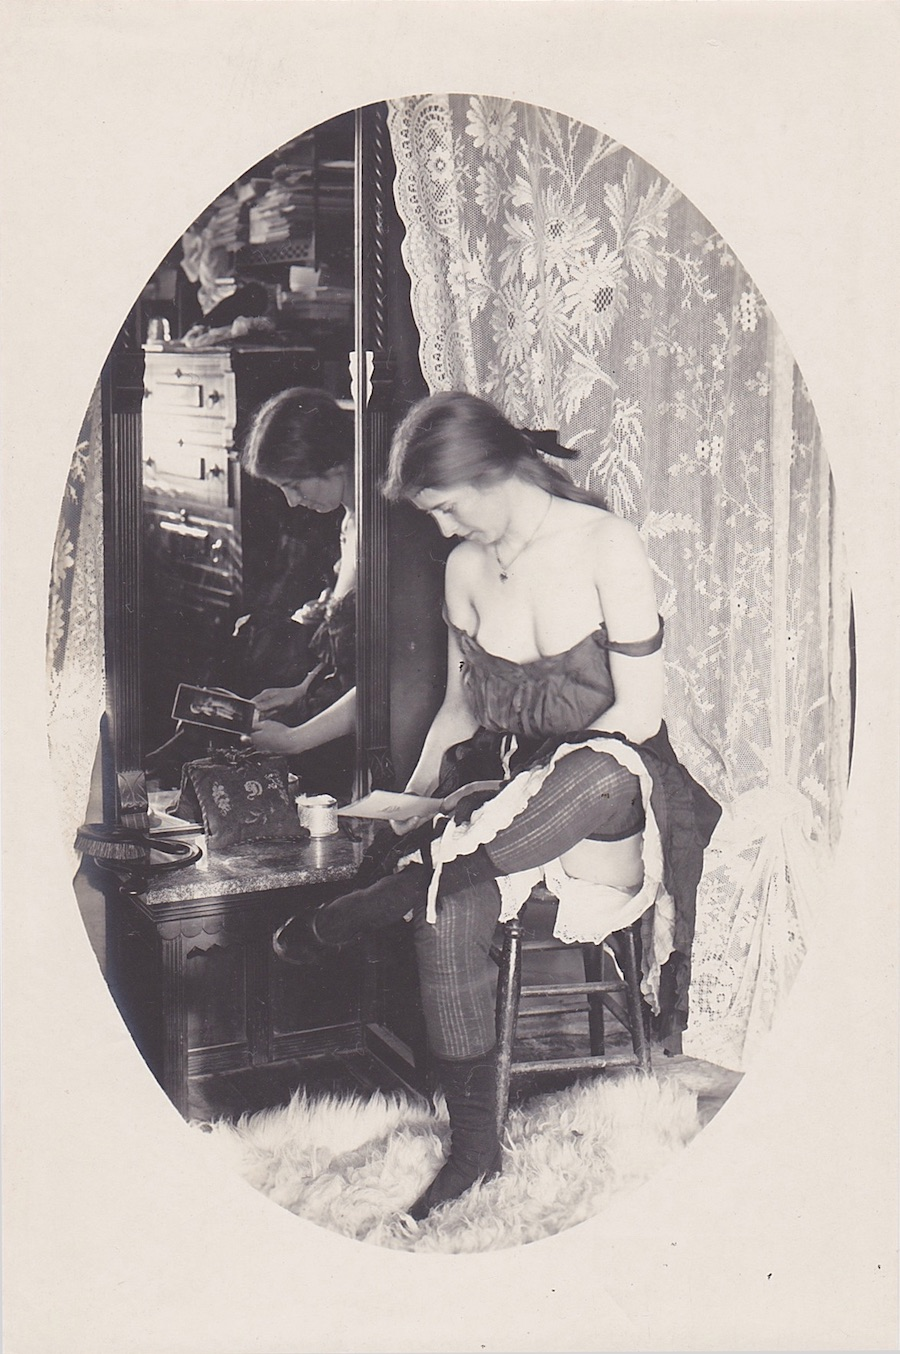 A working girl image from the exhibit